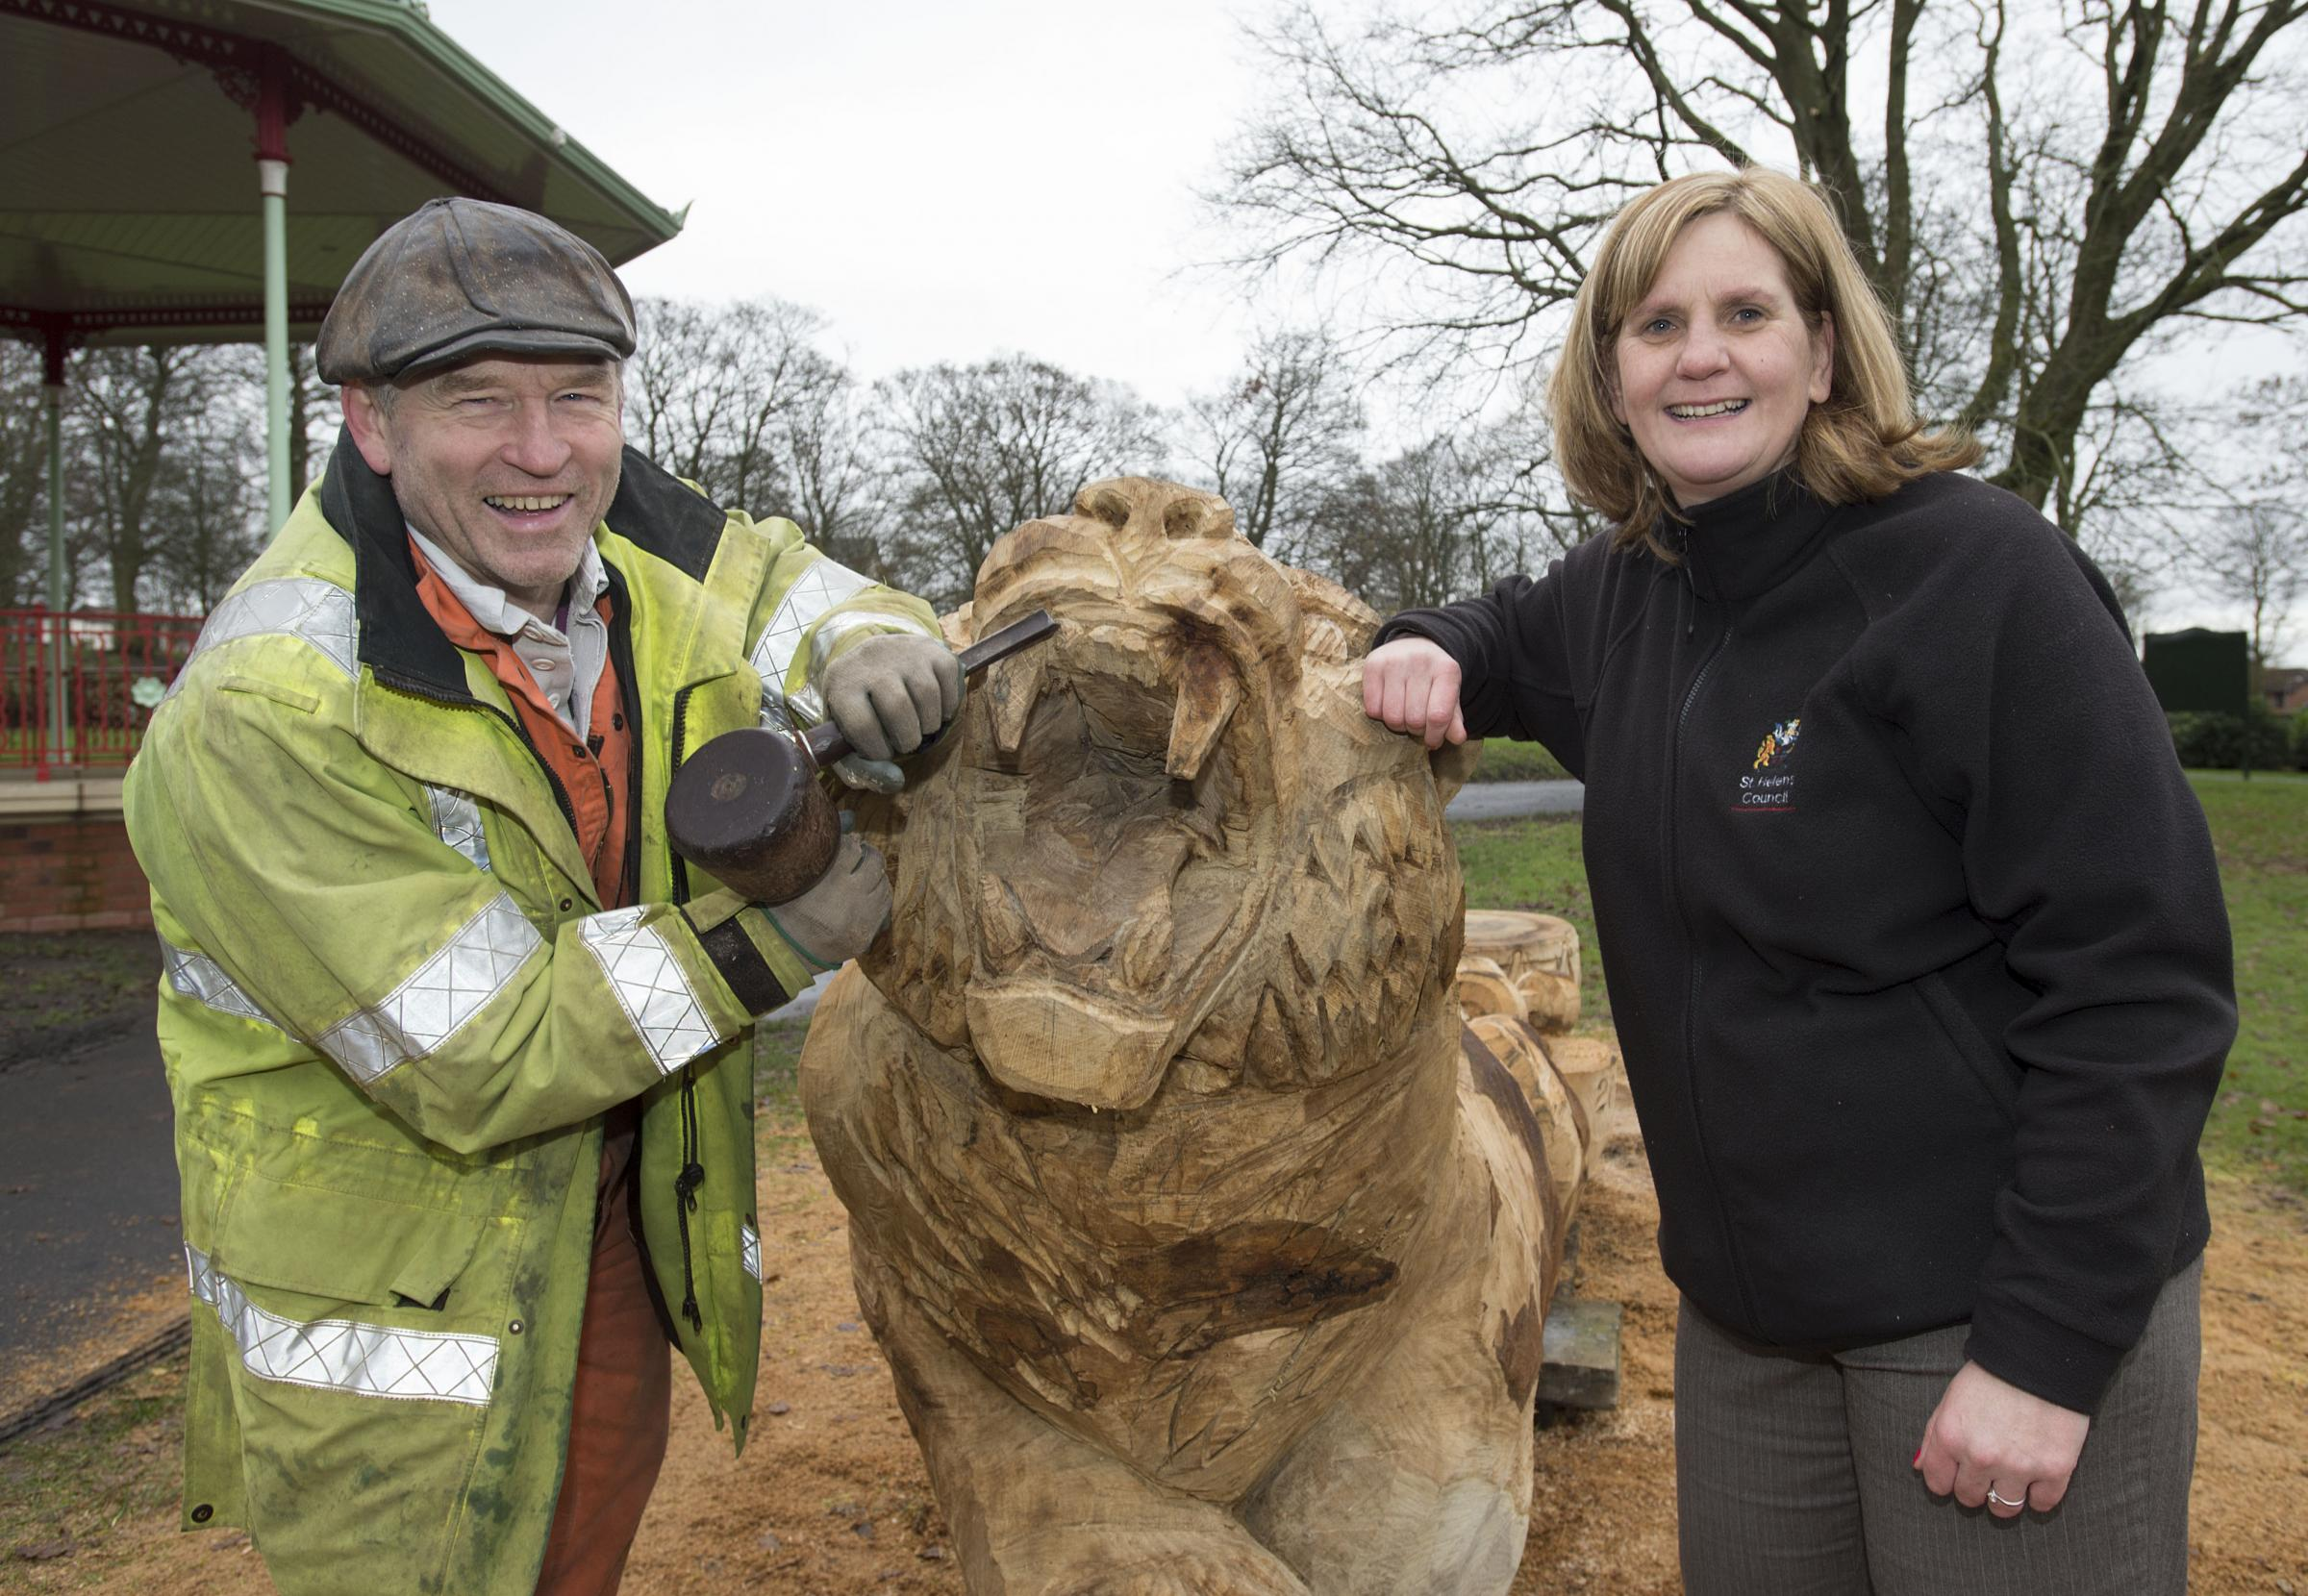 Sculptor Thompson Dagnall and Victoria Park officer Jill Barlow with the carving